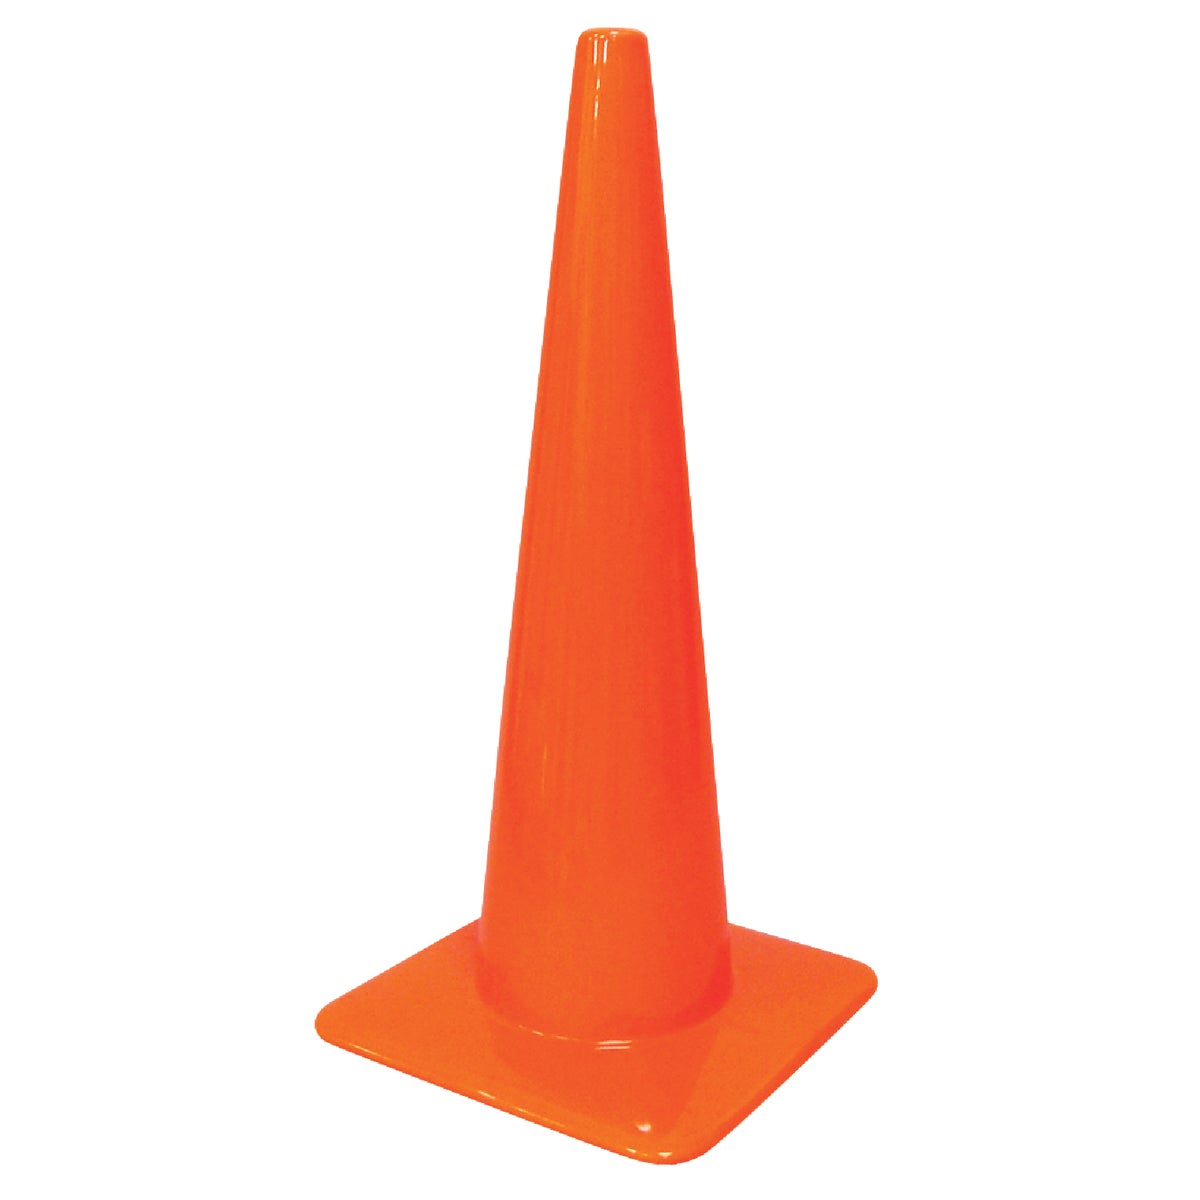 28X13.13 SAFETY CONE - SC-28 by Hy Ko Prods Co